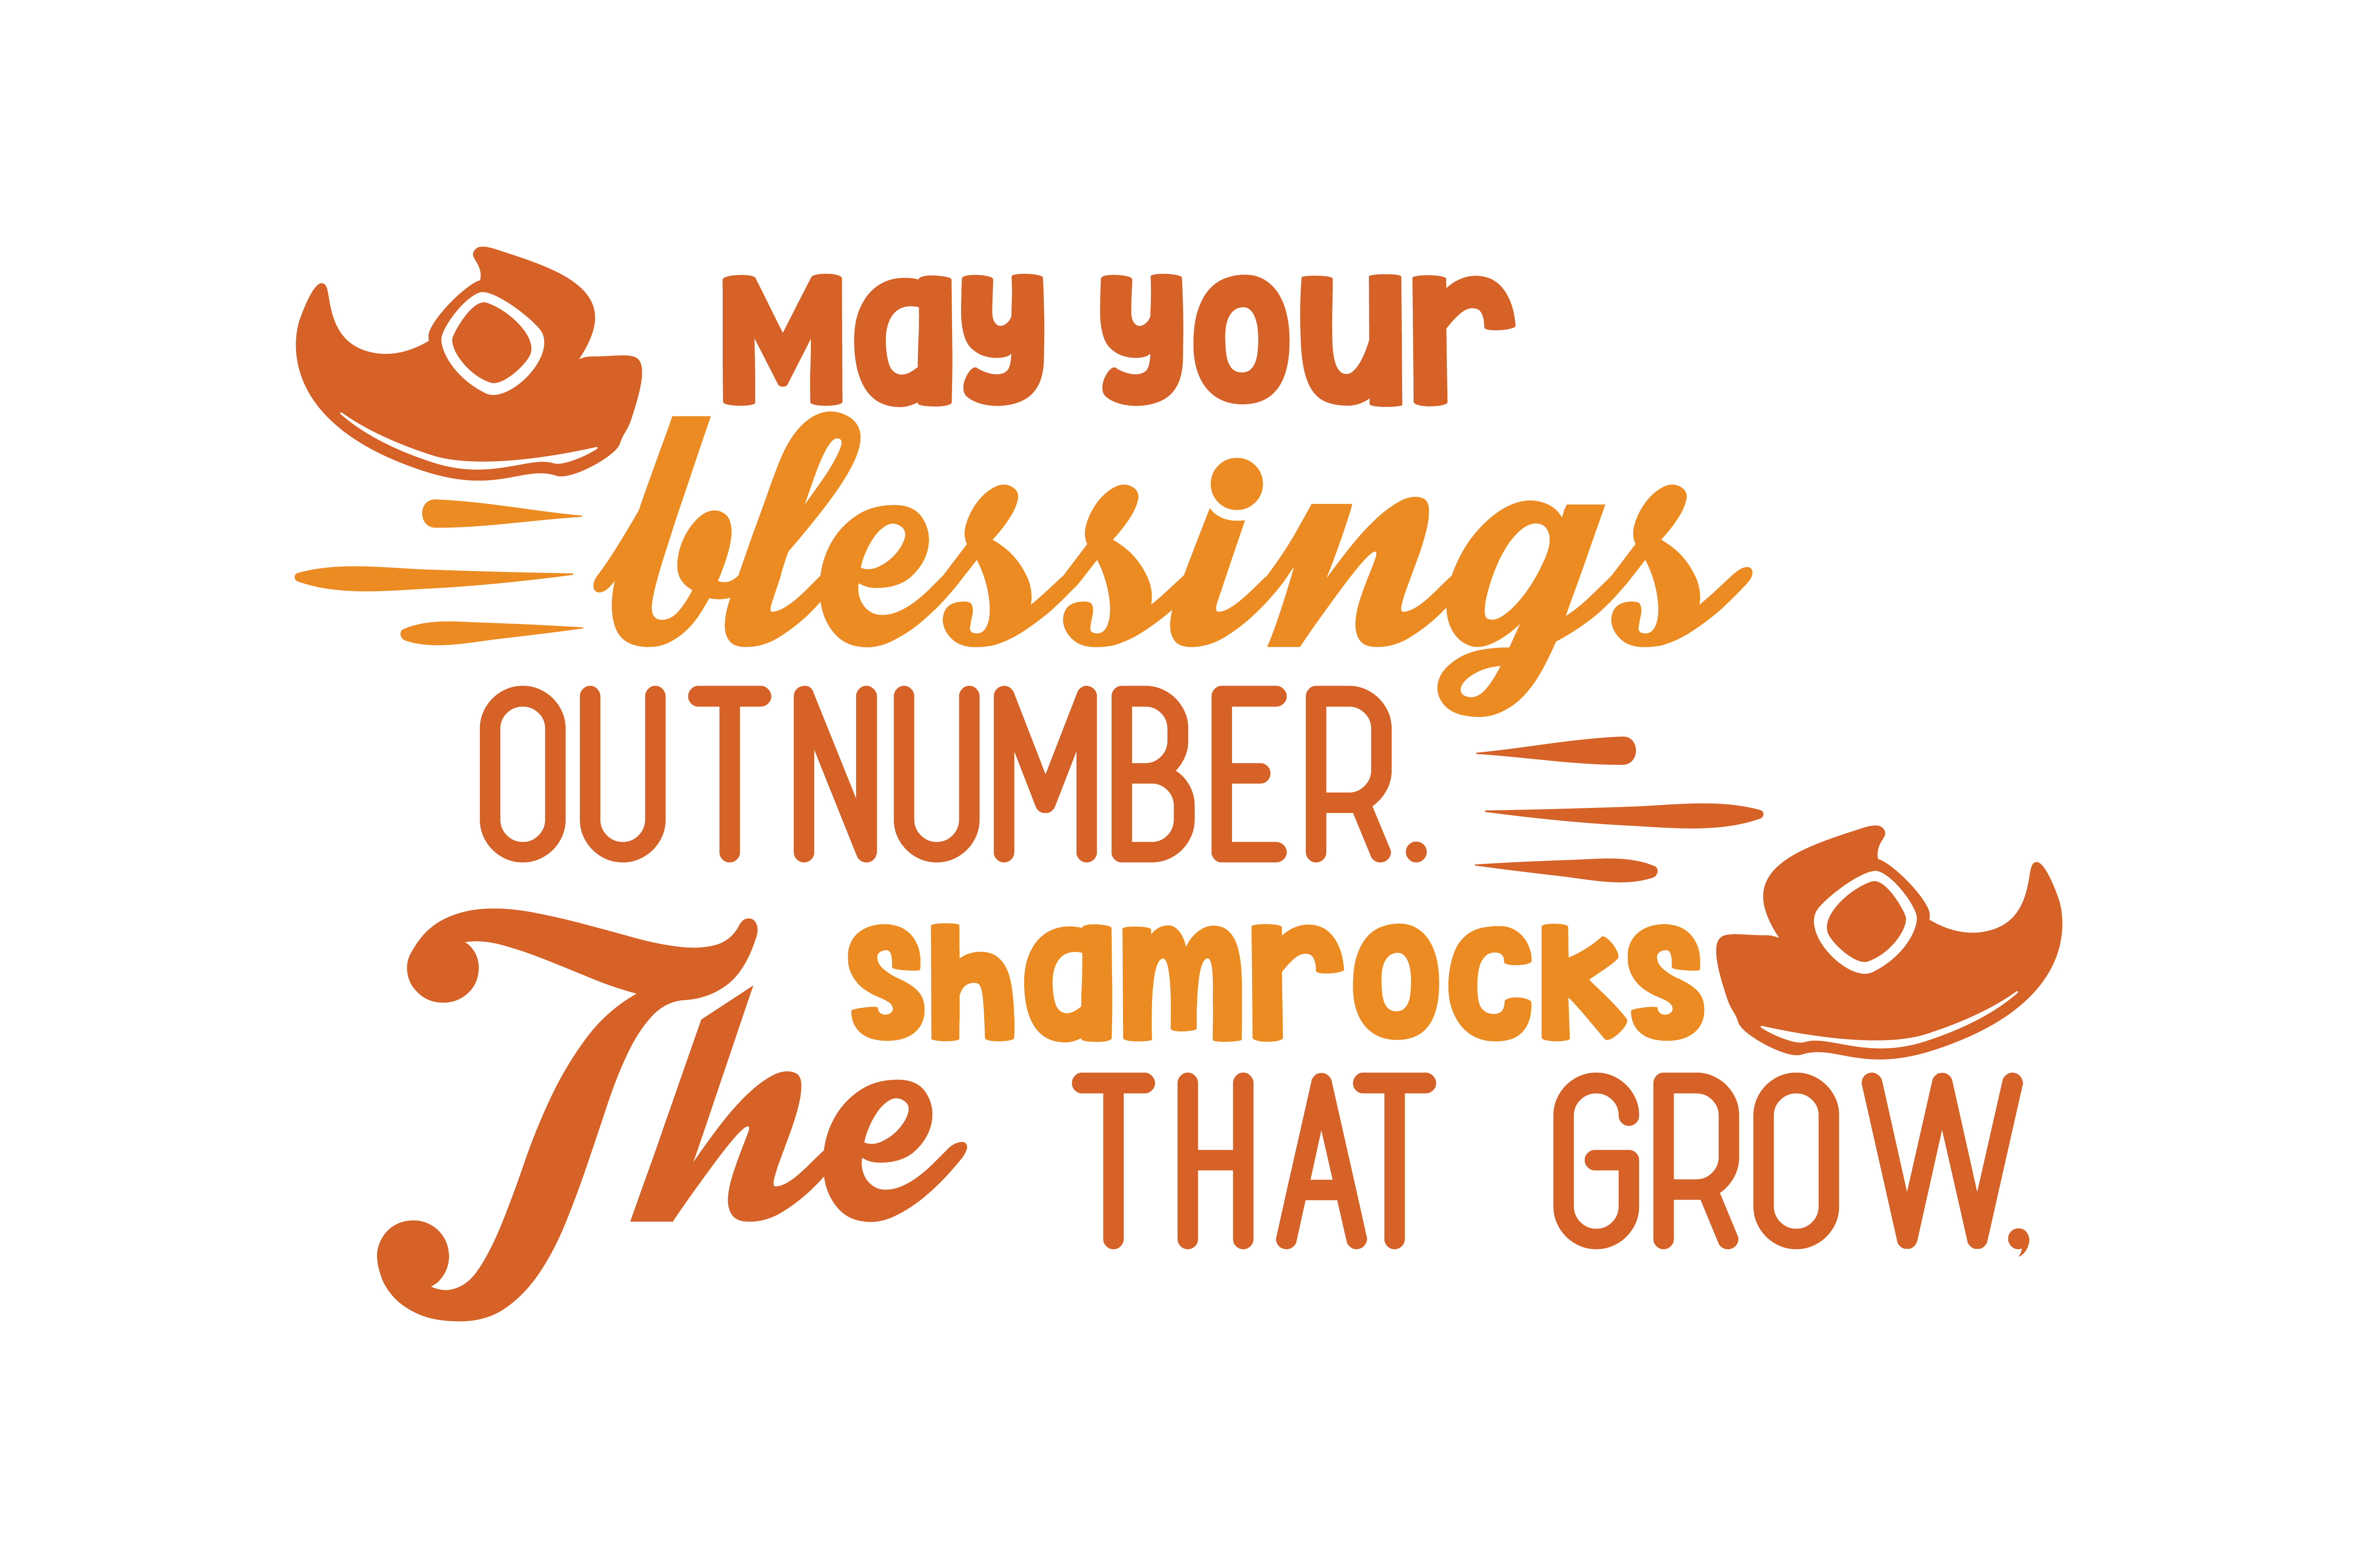 Download Free May Your Blessings Outnumber The Shamrocks That Grow Quote Svg for Cricut Explore, Silhouette and other cutting machines.